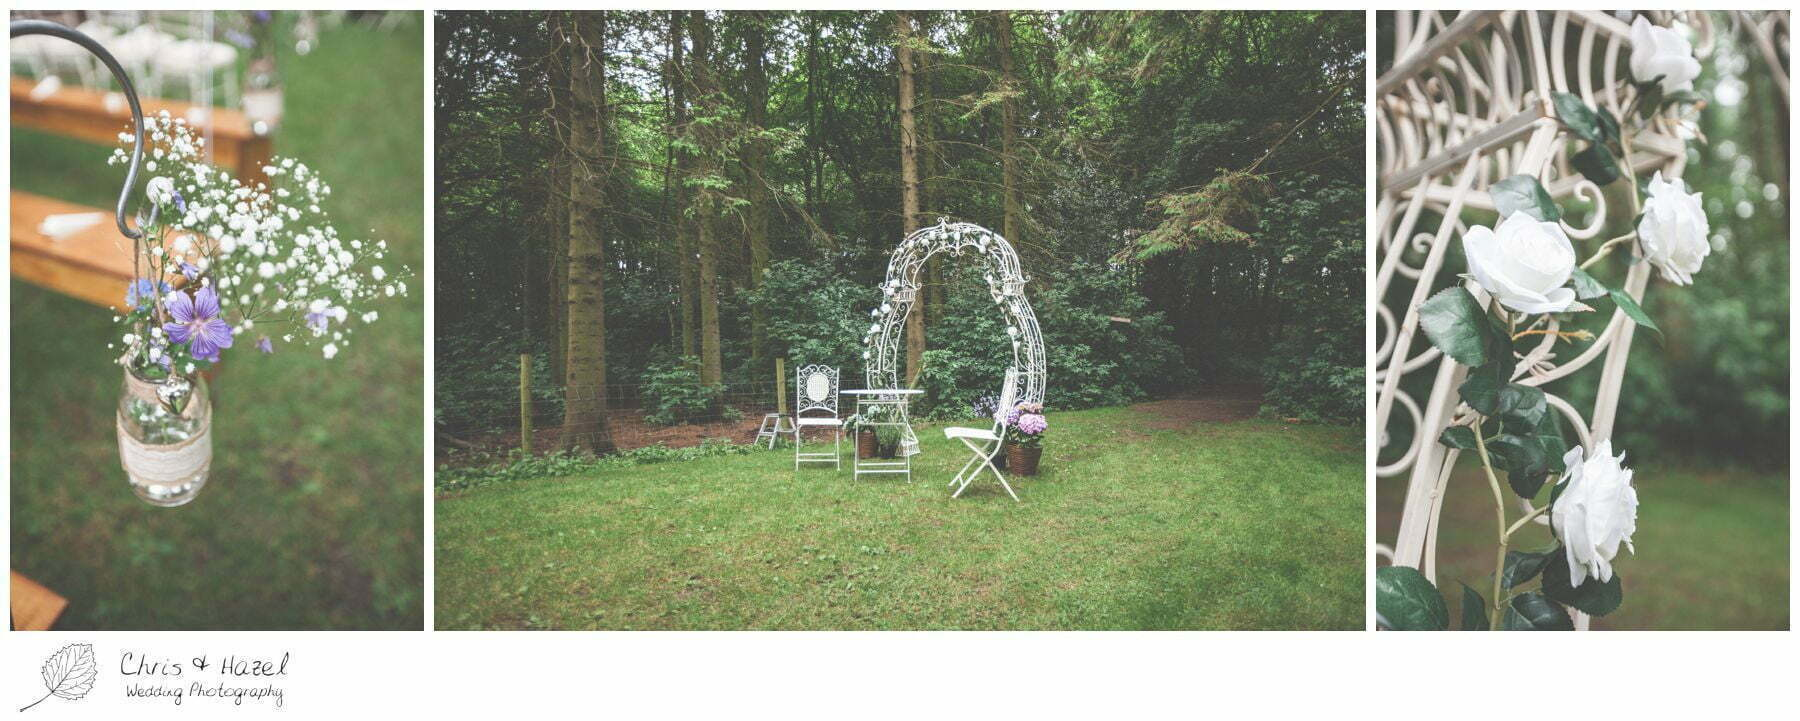 flower arch, woodland wedding, eco wedding, love letters, wedding, Eccup Wedding Photographer, Lineham Farm, Wedding Photography Leeds, Chris and Hazel Wedding Photography, Richard Wyatt, Laura Kelly